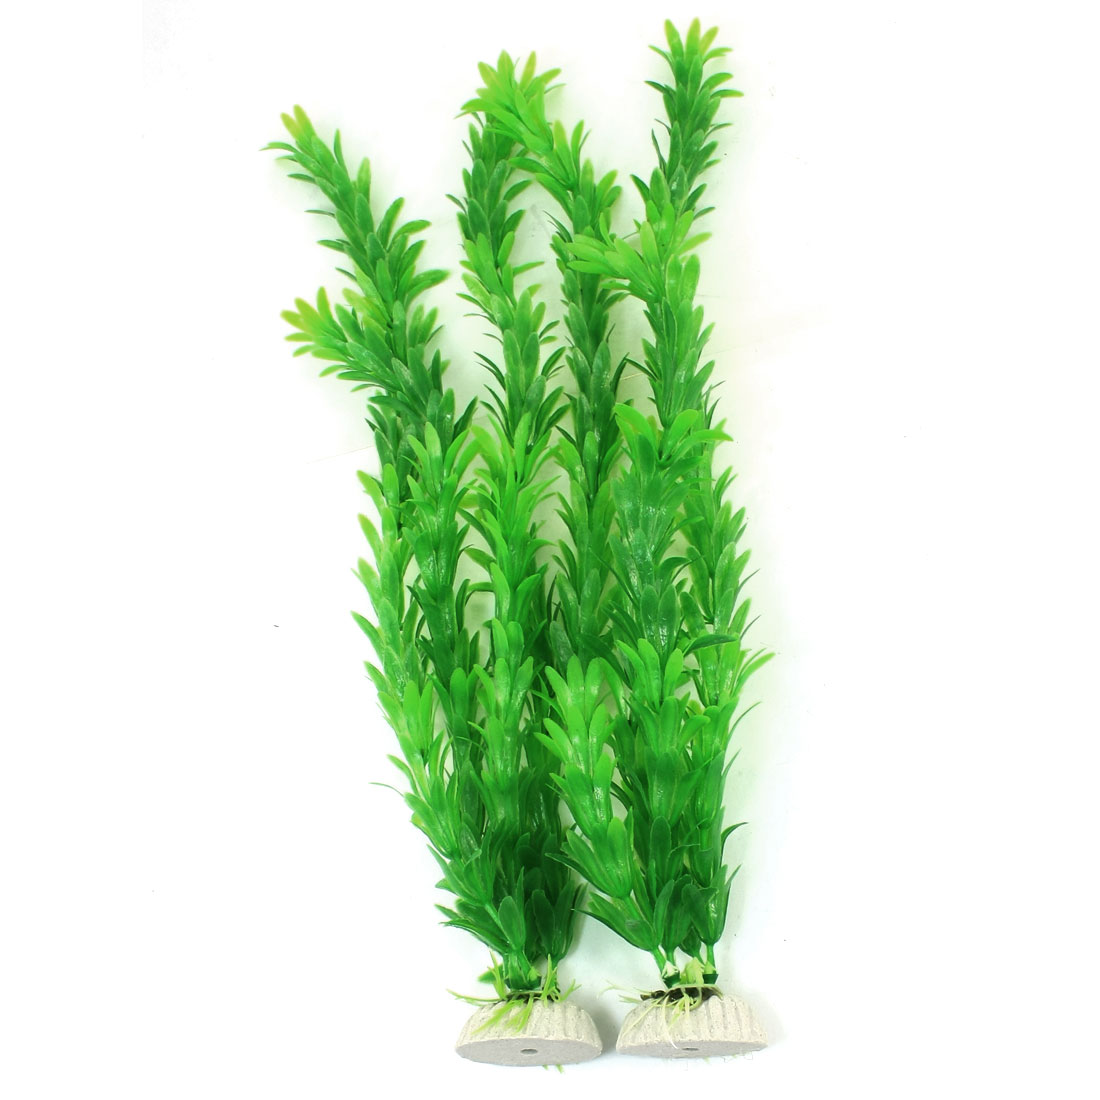 2 Pcs Green Ornament Plastic Grass Leaves Plant for Aquarium Fish Tank 35cm